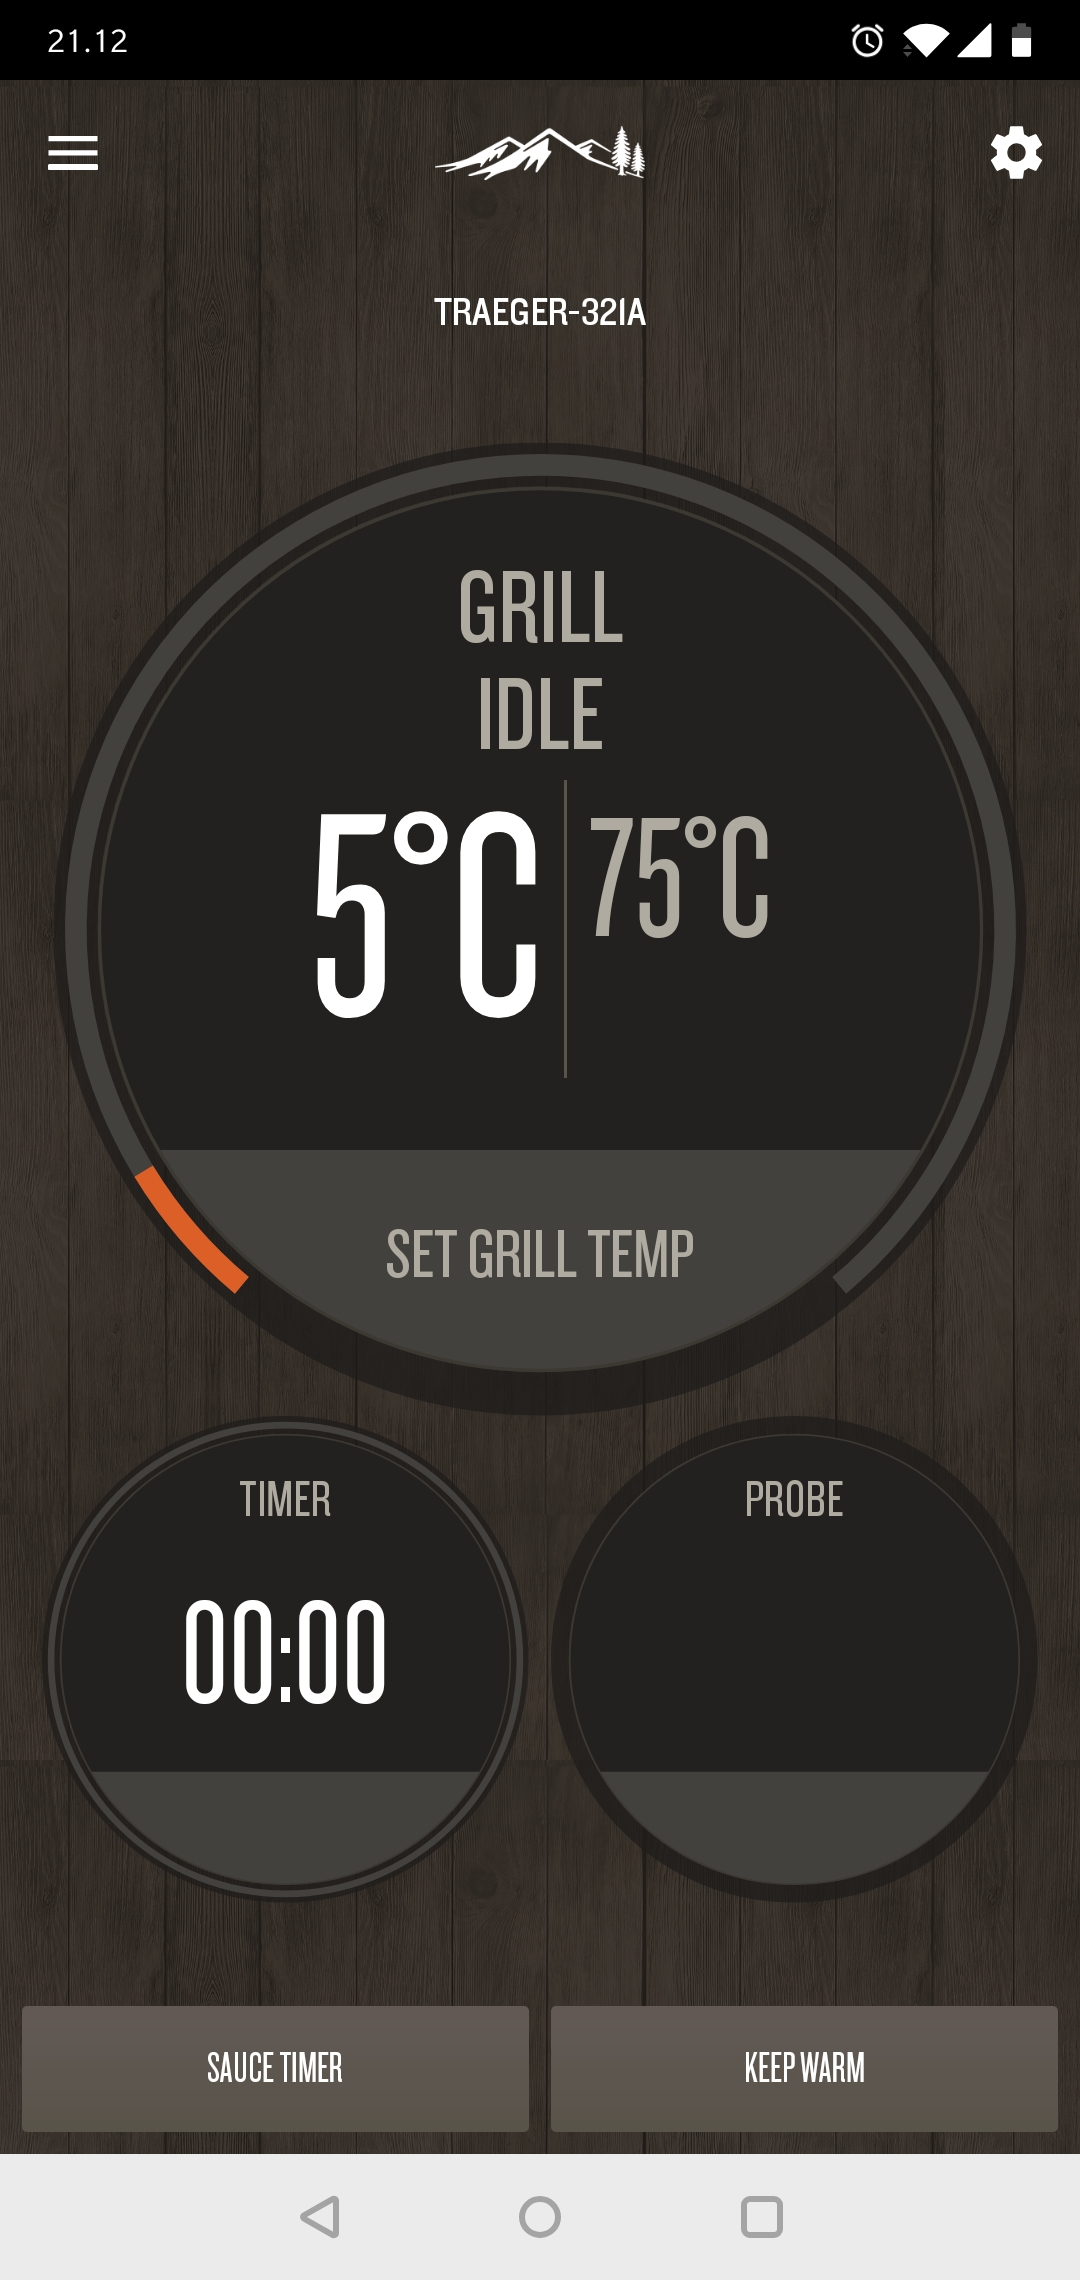 cooking traeger grill 570 pro